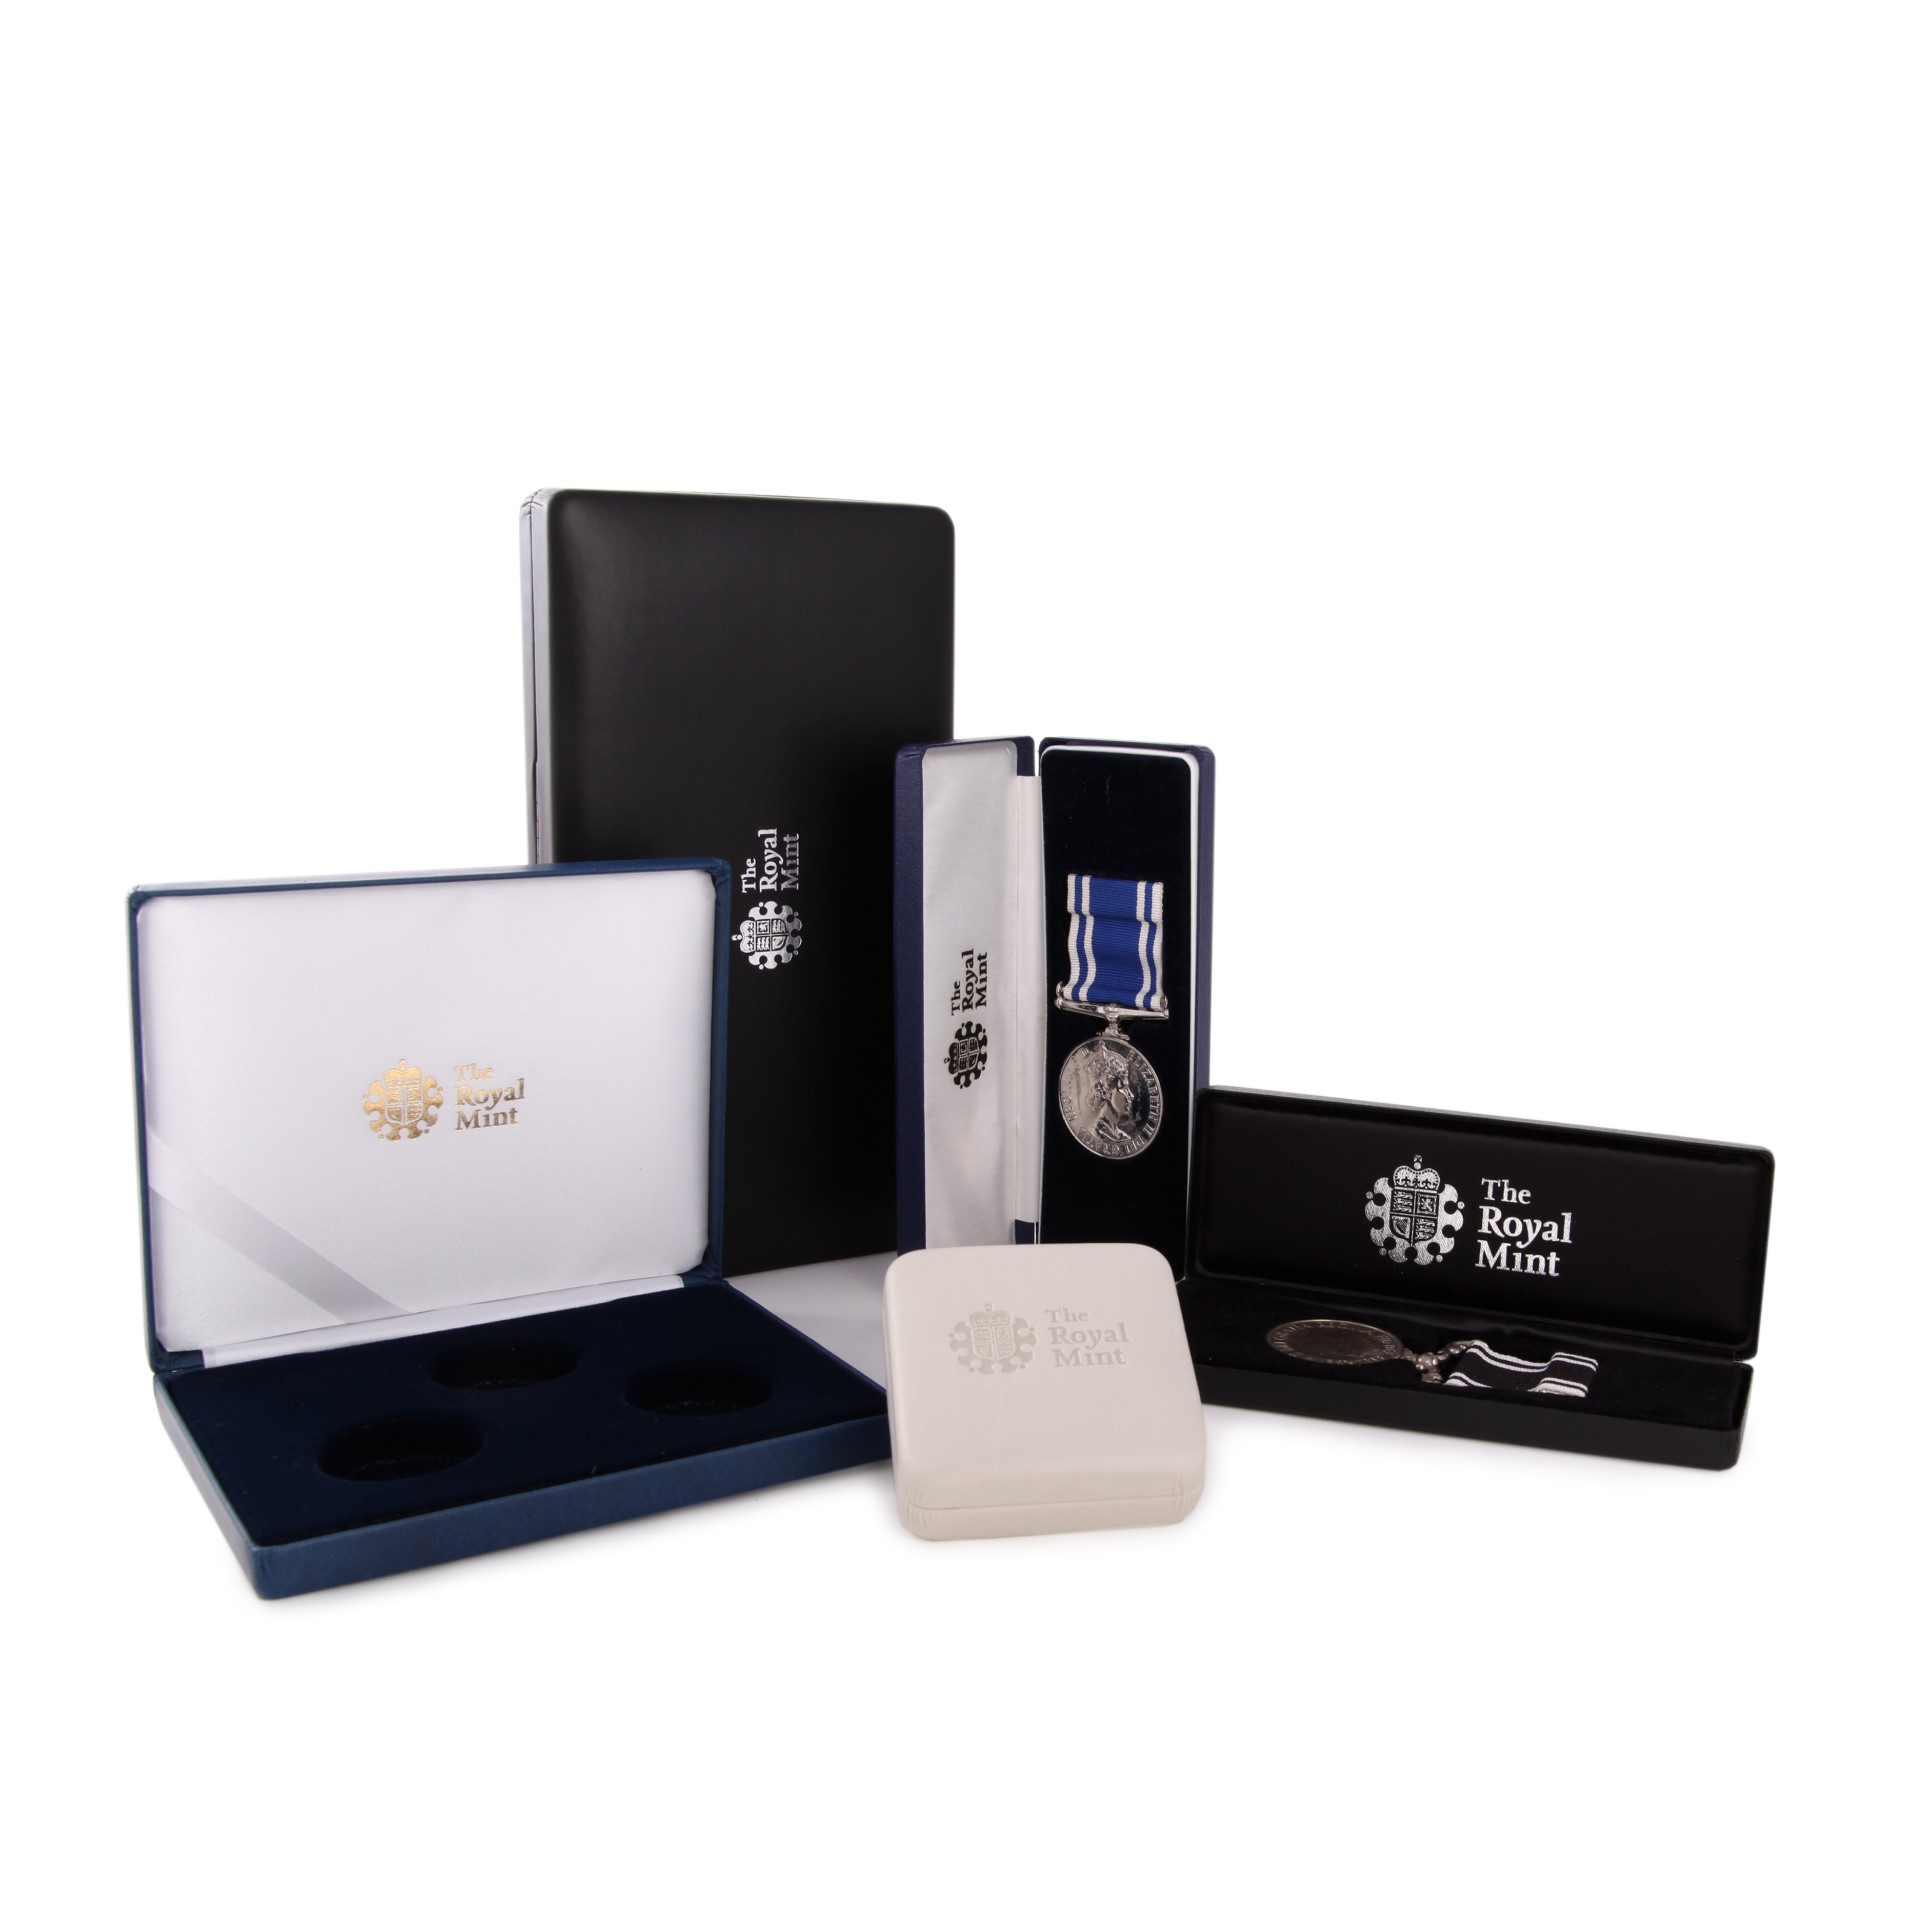 The Royal Mint Black and White Coin and Medal Boxes